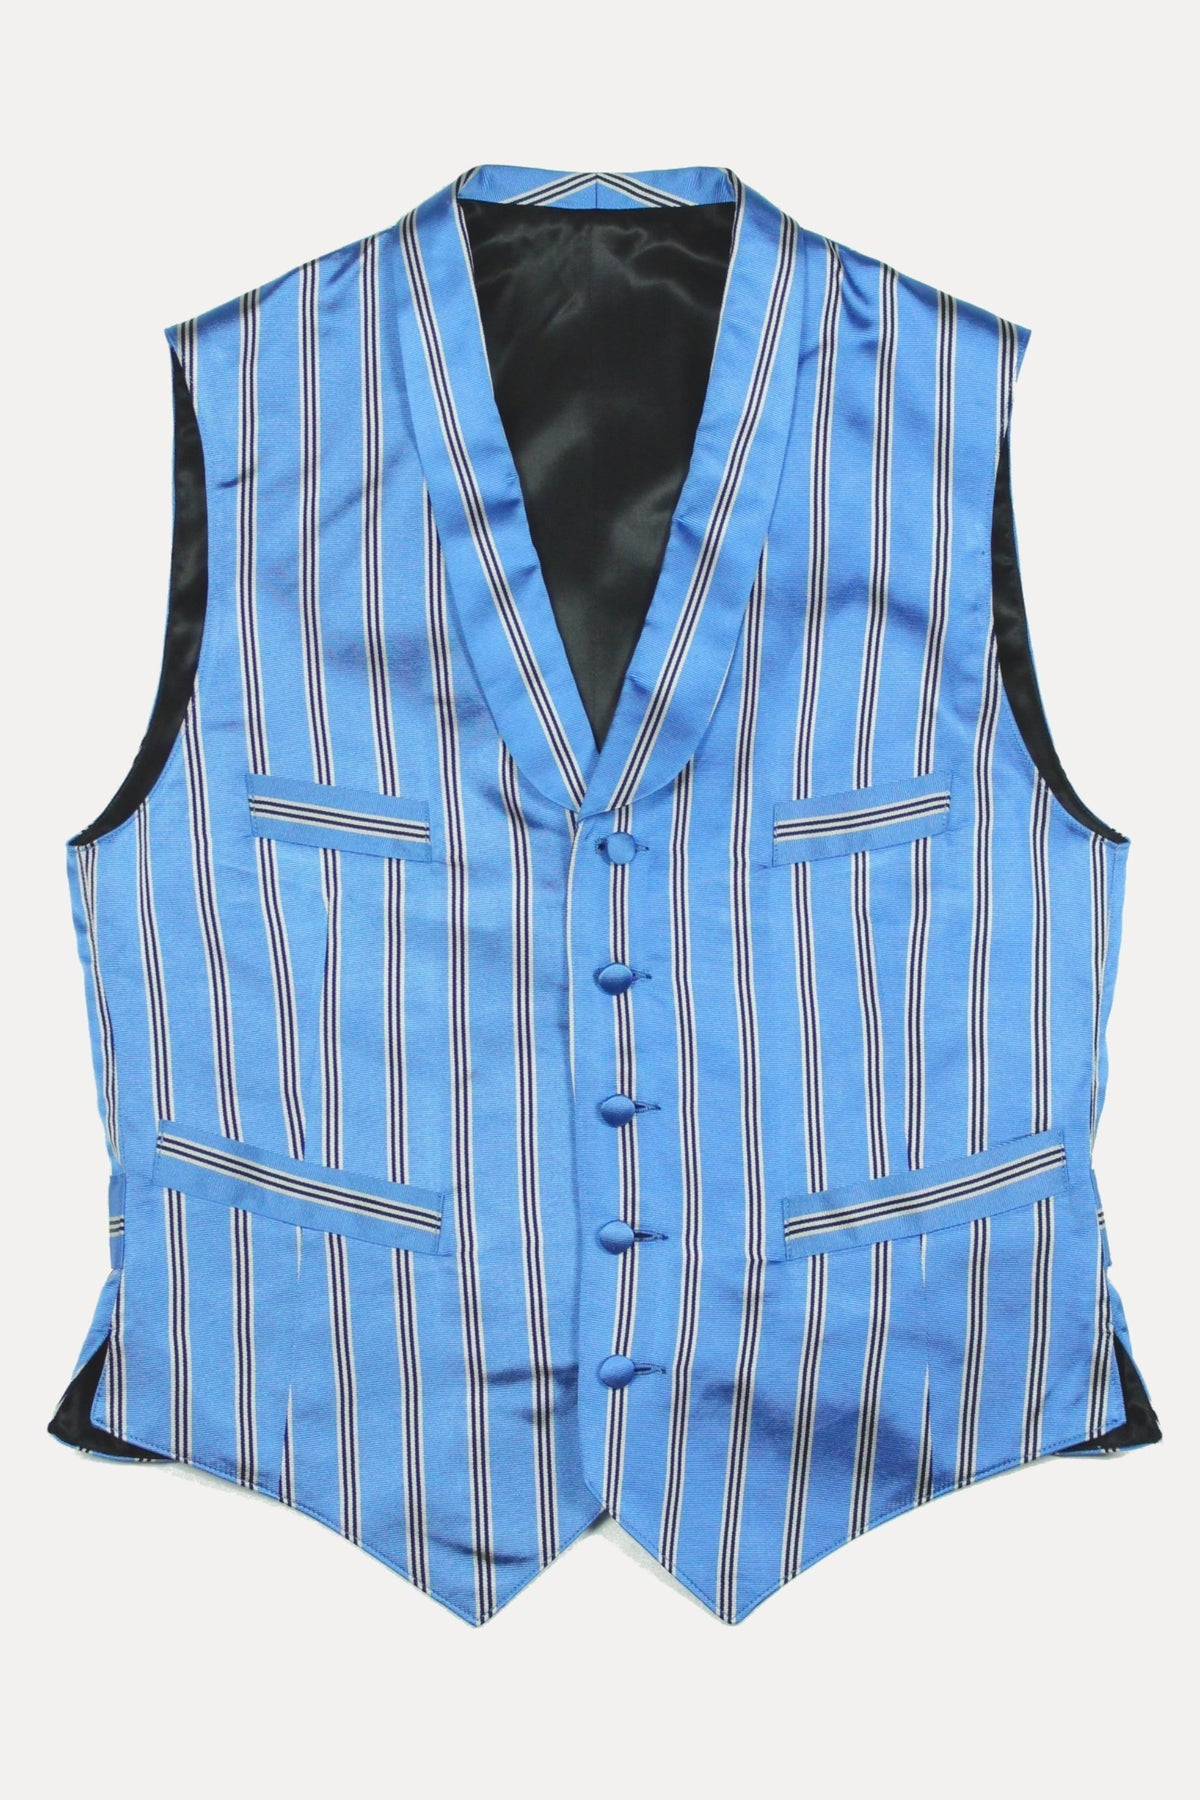 SHAWL COLLAR WAISTCOAT IN BLUE ROCHESTER SILK (made to order)-menswear-A Child Of The Jago